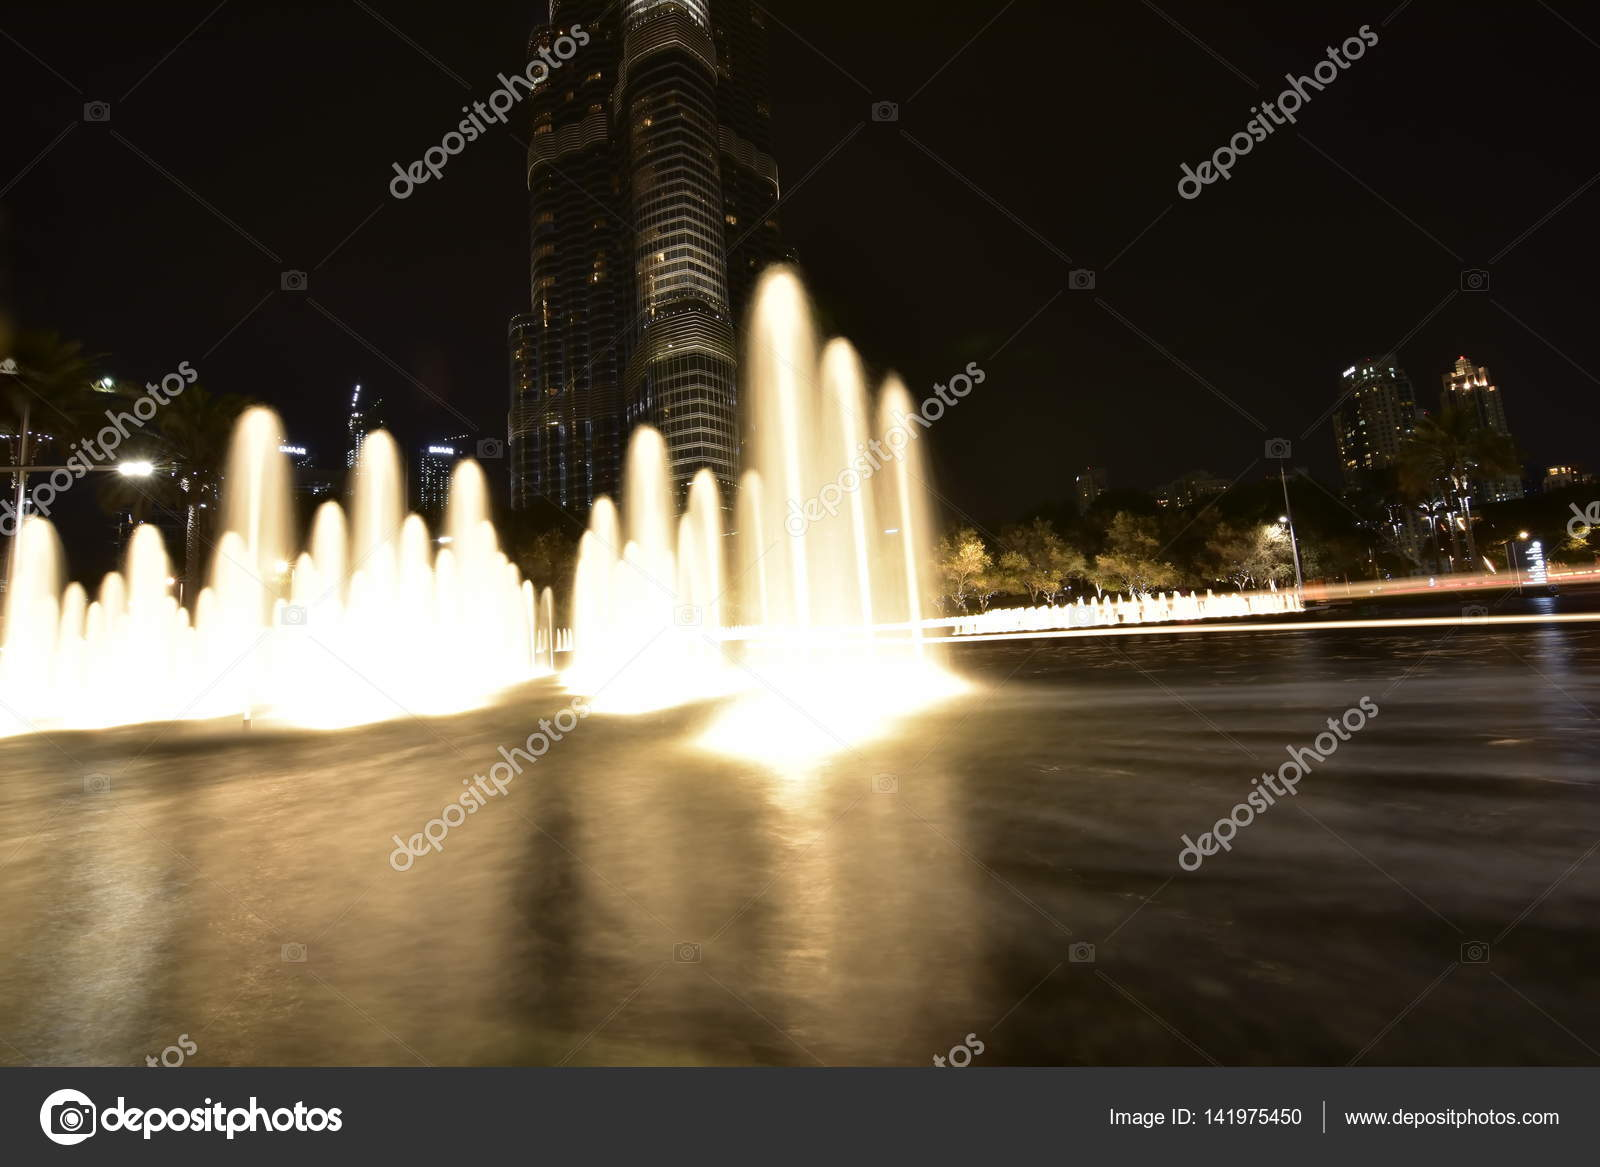 Dubai, United Arab Emirates - January 15, 2017: Sheikh Mohammed Bin